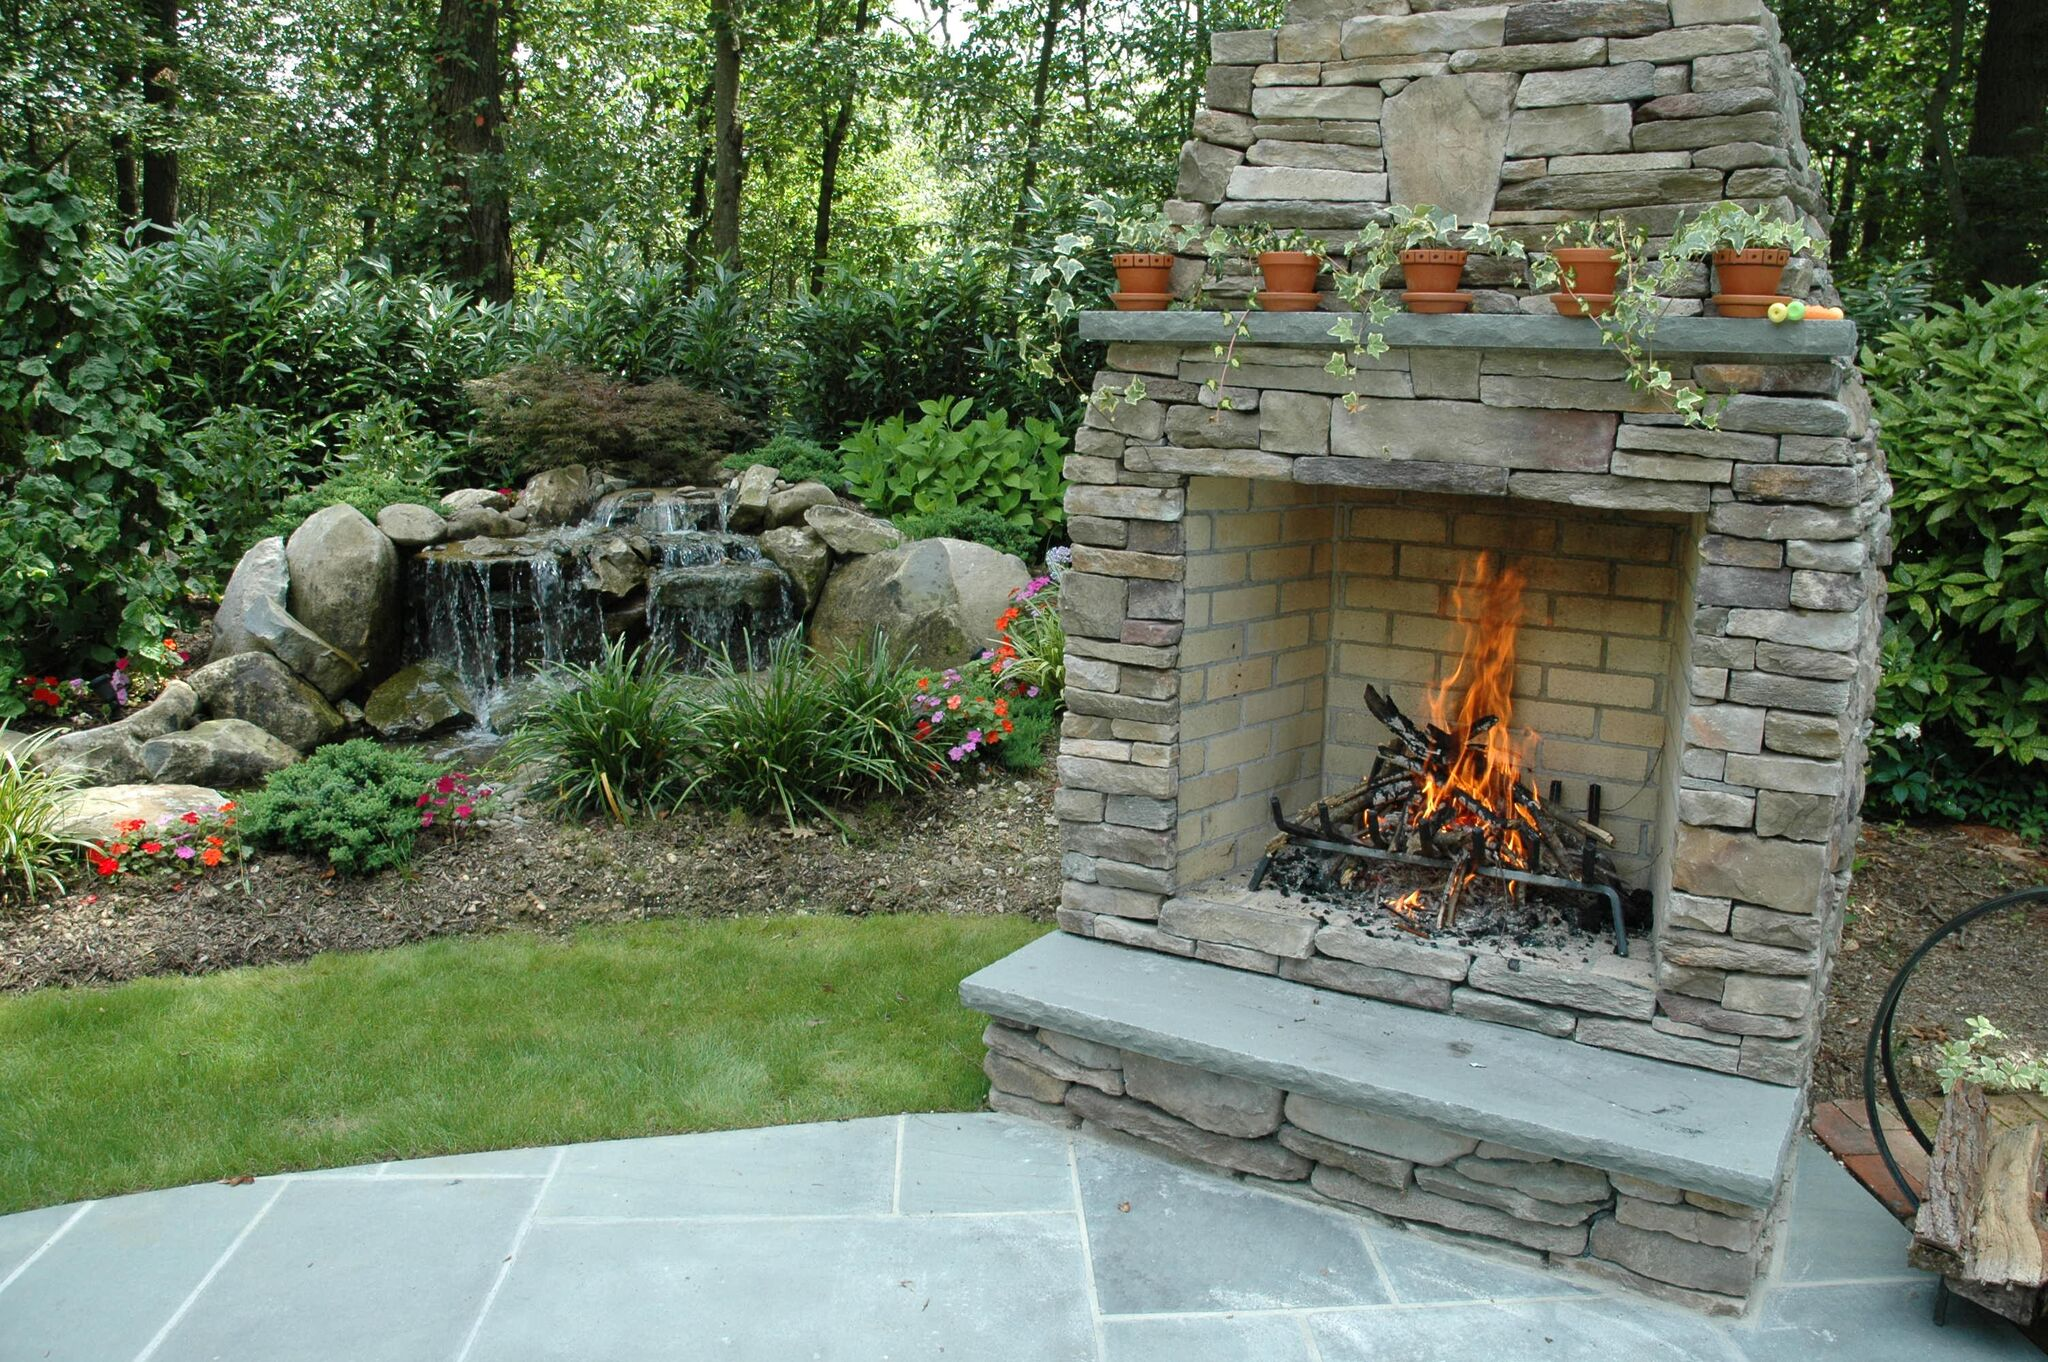 Custom Outdoor Wood-burning Fireplace: